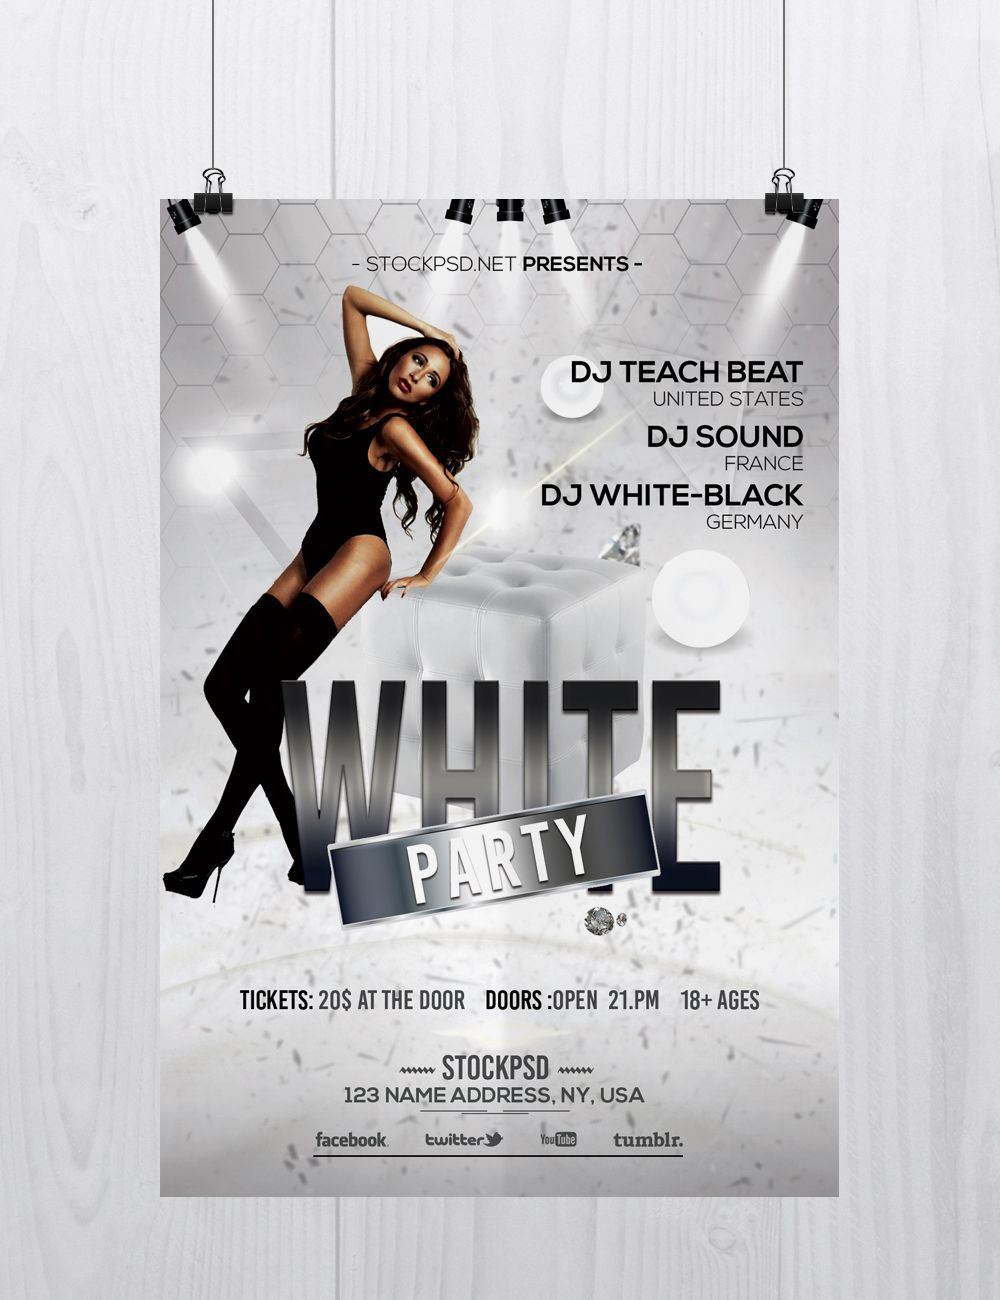 003 Unforgettable Free Party Flyer Template For Photoshop Photo  Pool Psd DownloadFull